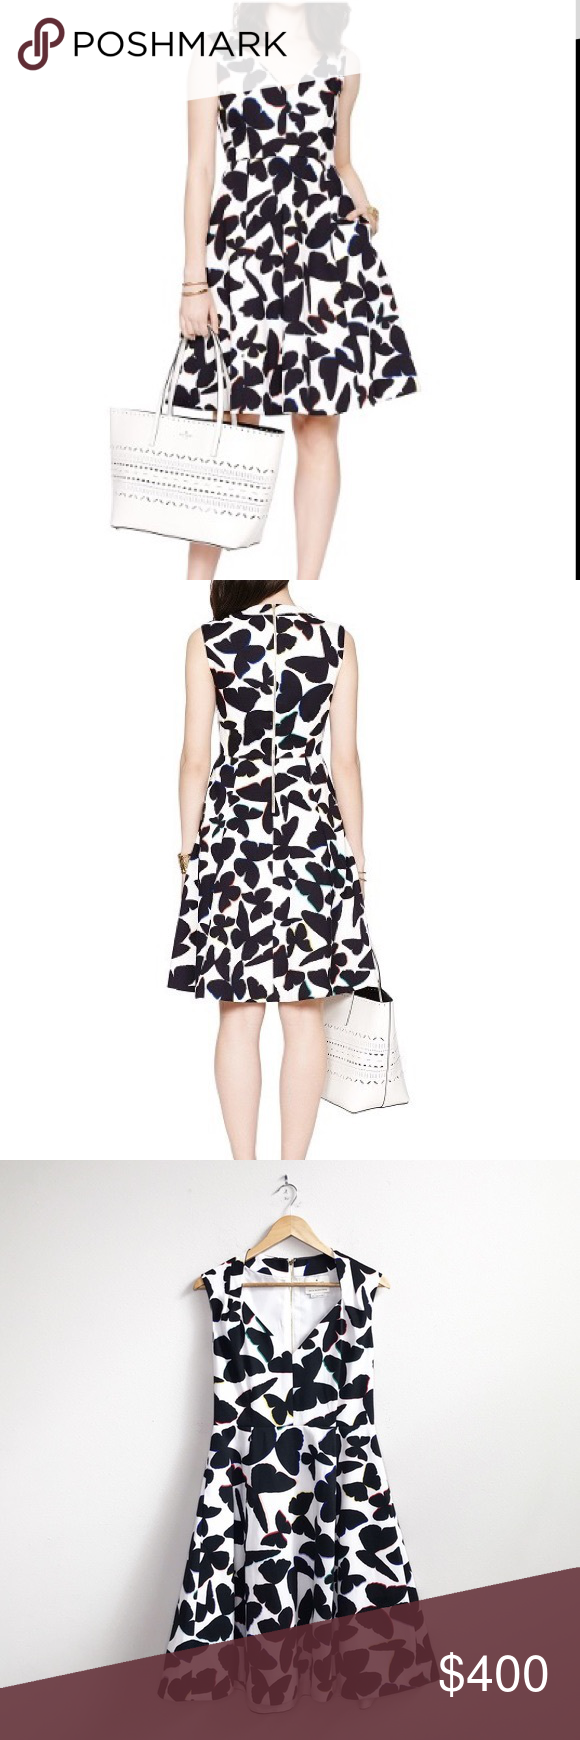 Kate Spade Fit And Flare Butterfly Dress Butterfly Dress Fit And Flare Kate Spade Dress [ 1740 x 580 Pixel ]